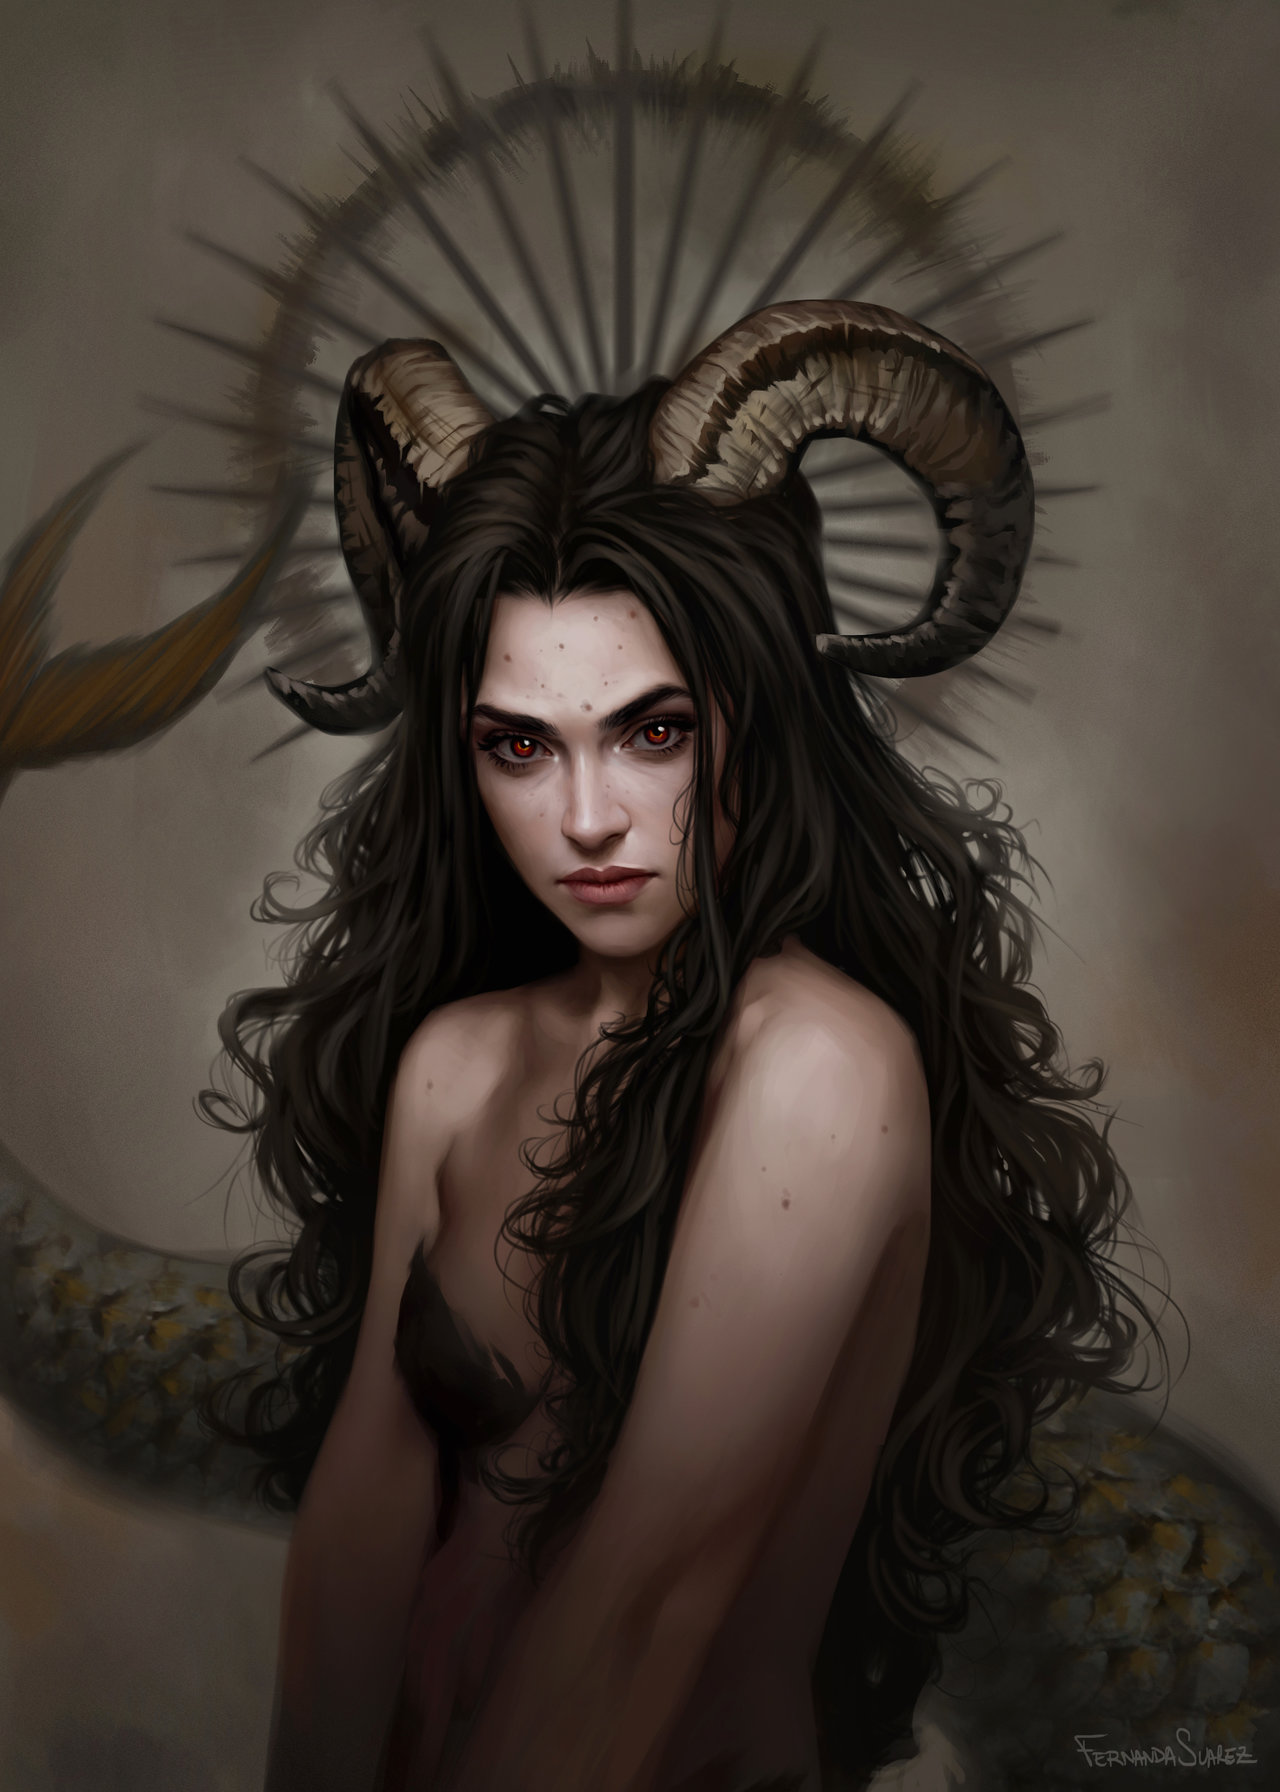 Fernanda_Suarez_digital_painting_illustration_portrait_mythology